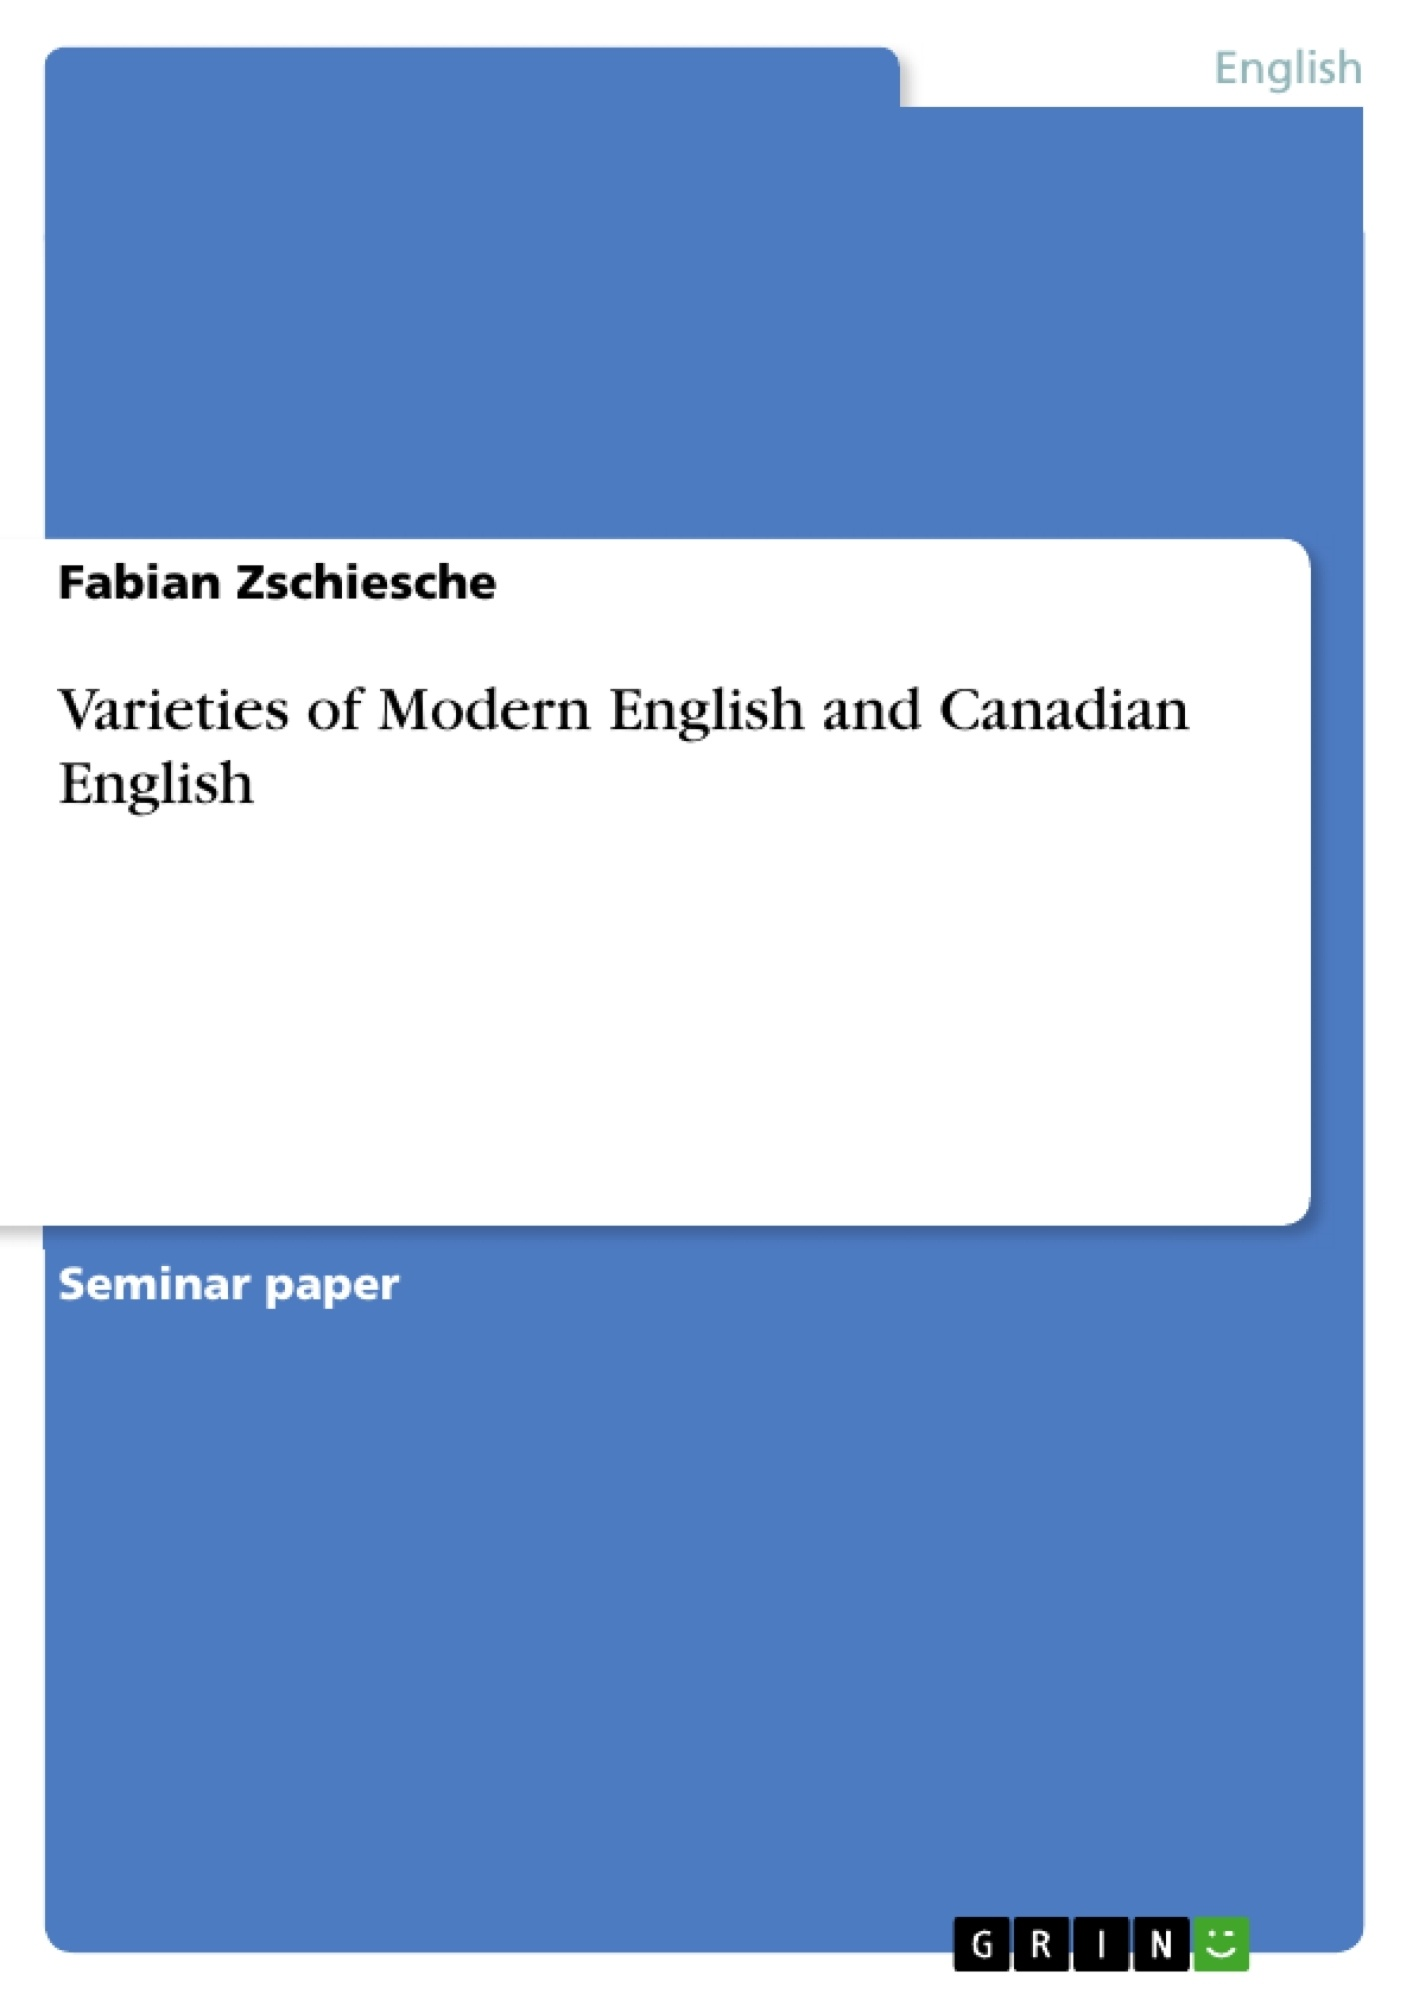 Title: Varieties of Modern English and Canadian English